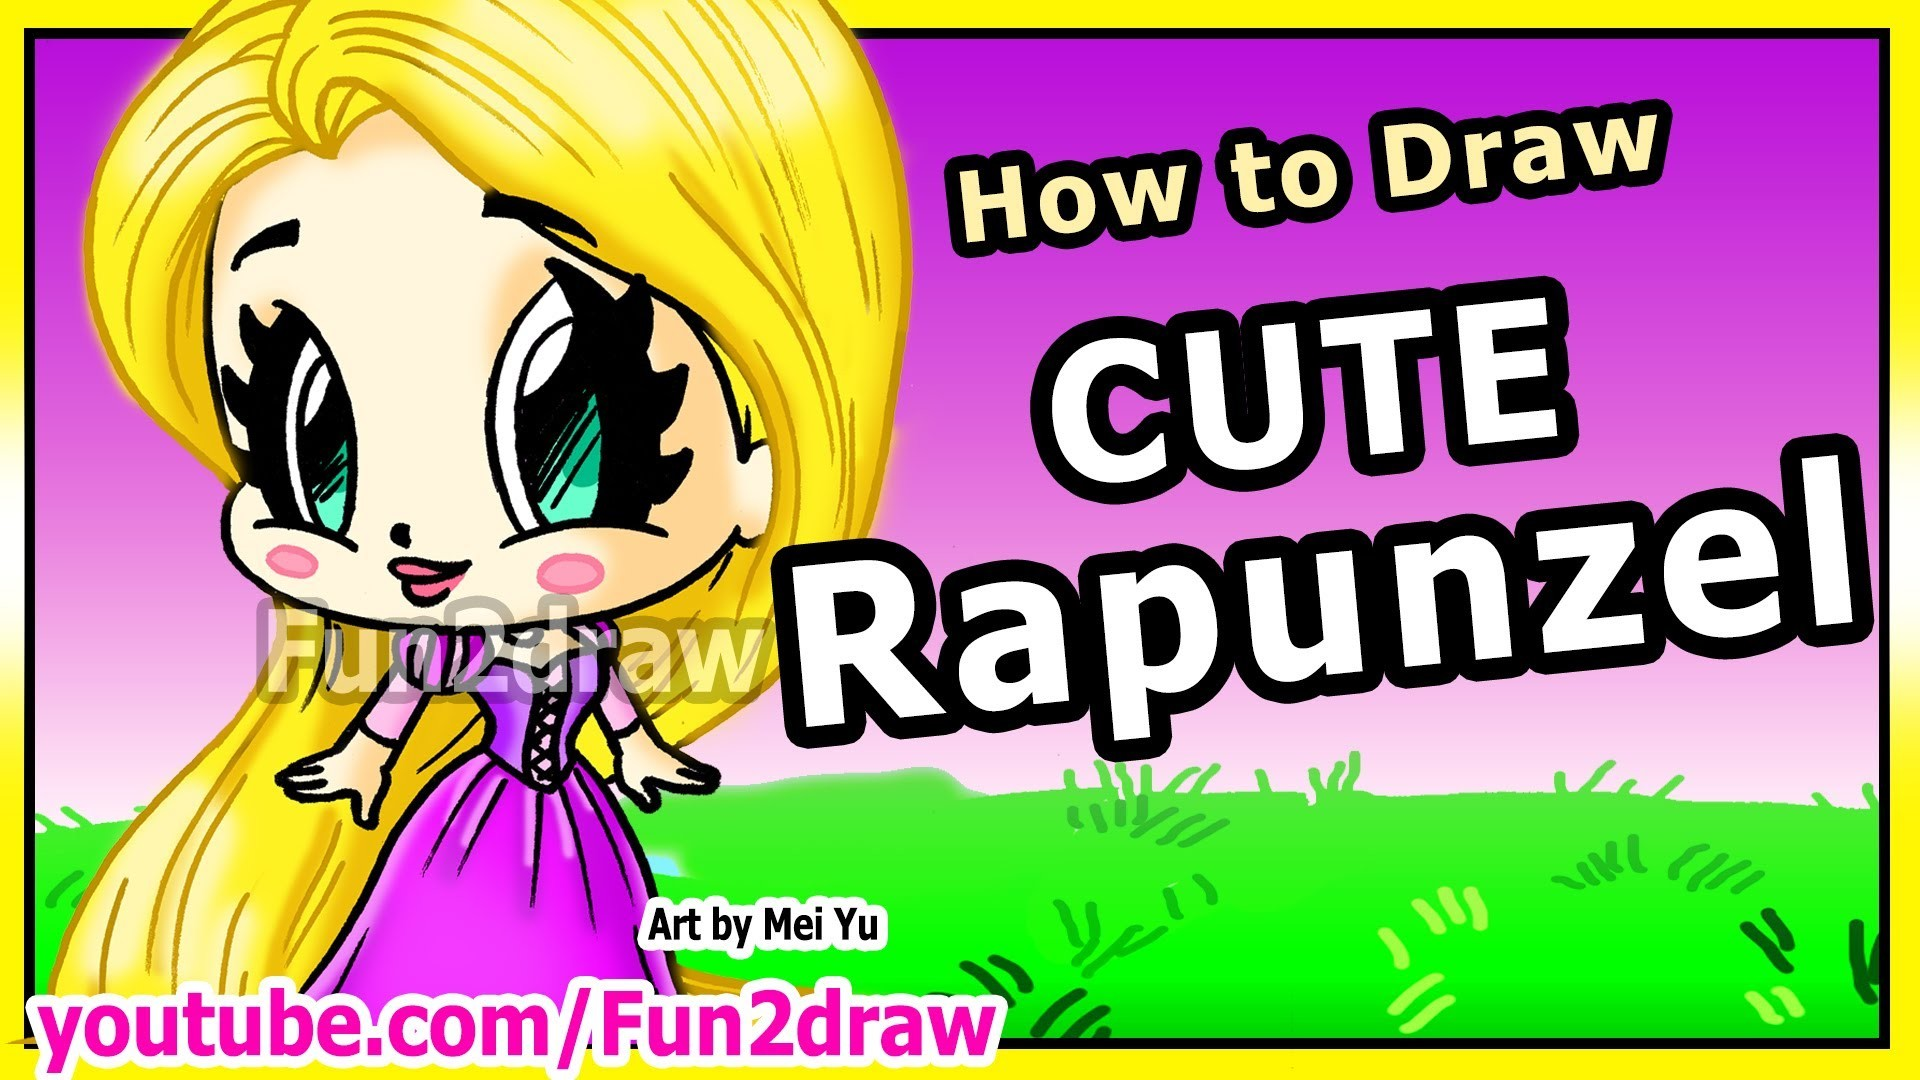 How to Draw Disney Princesses & Characters - Rapunzel from Tangled - Fun2draw Art Drawing Lessons